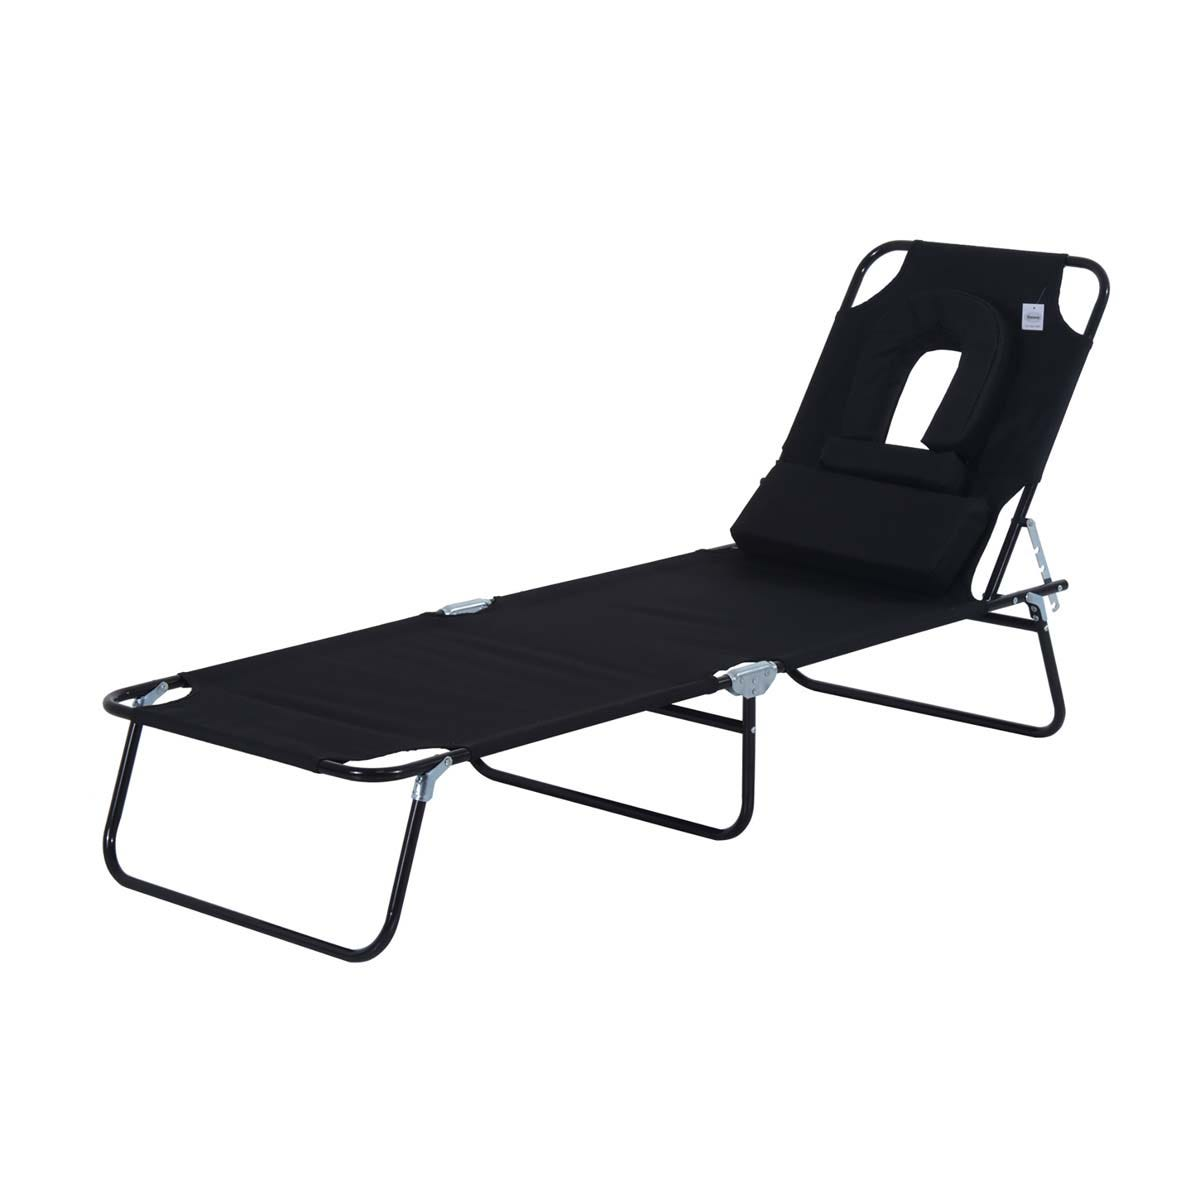 Outsunny Premium Folding Sun Lounger with Reading Hole - Black